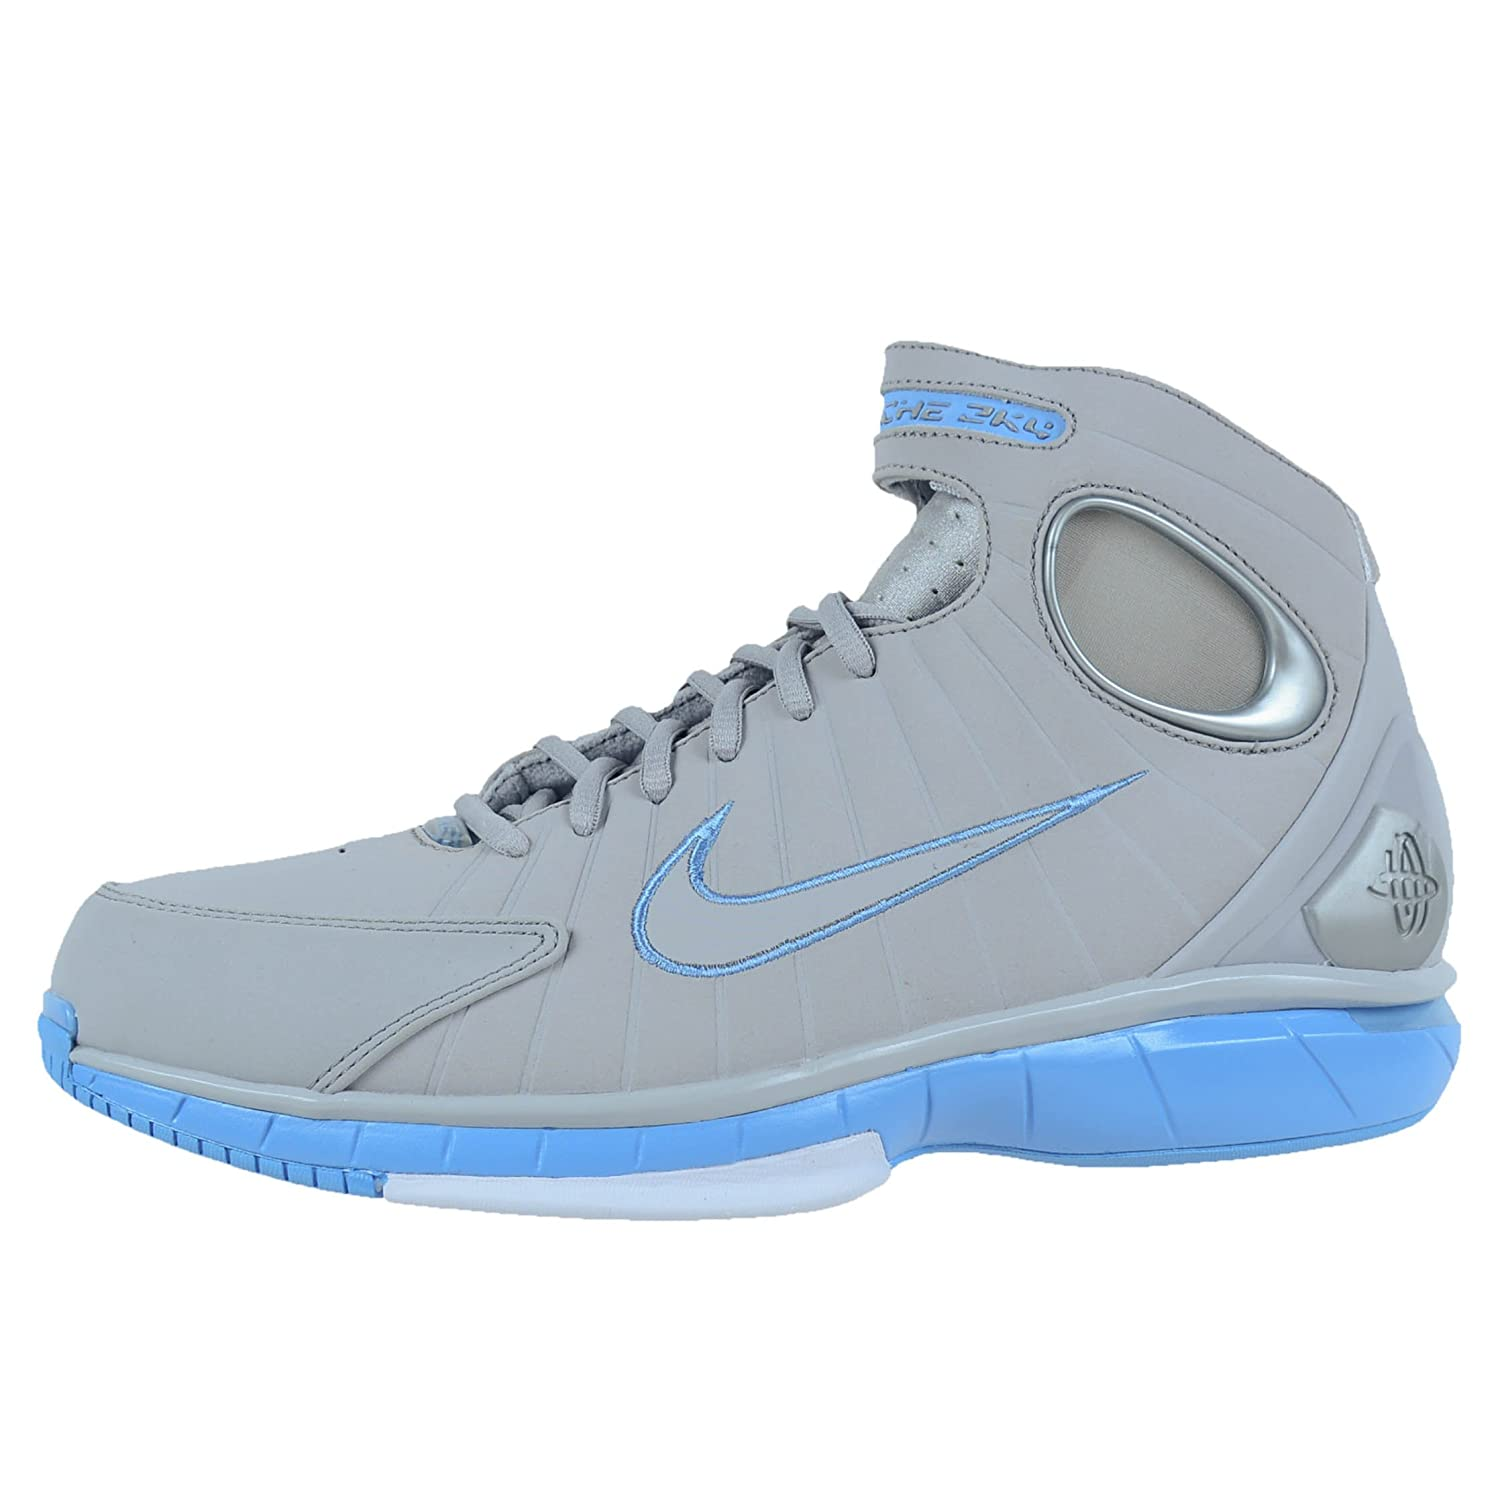 7d38c4390eca Nike Air Zoom Huarache 2K4 308475-002 Wolf Grey University Blue White Wolf  Grey (9)  Buy Online at Low Prices in India - Amazon.in